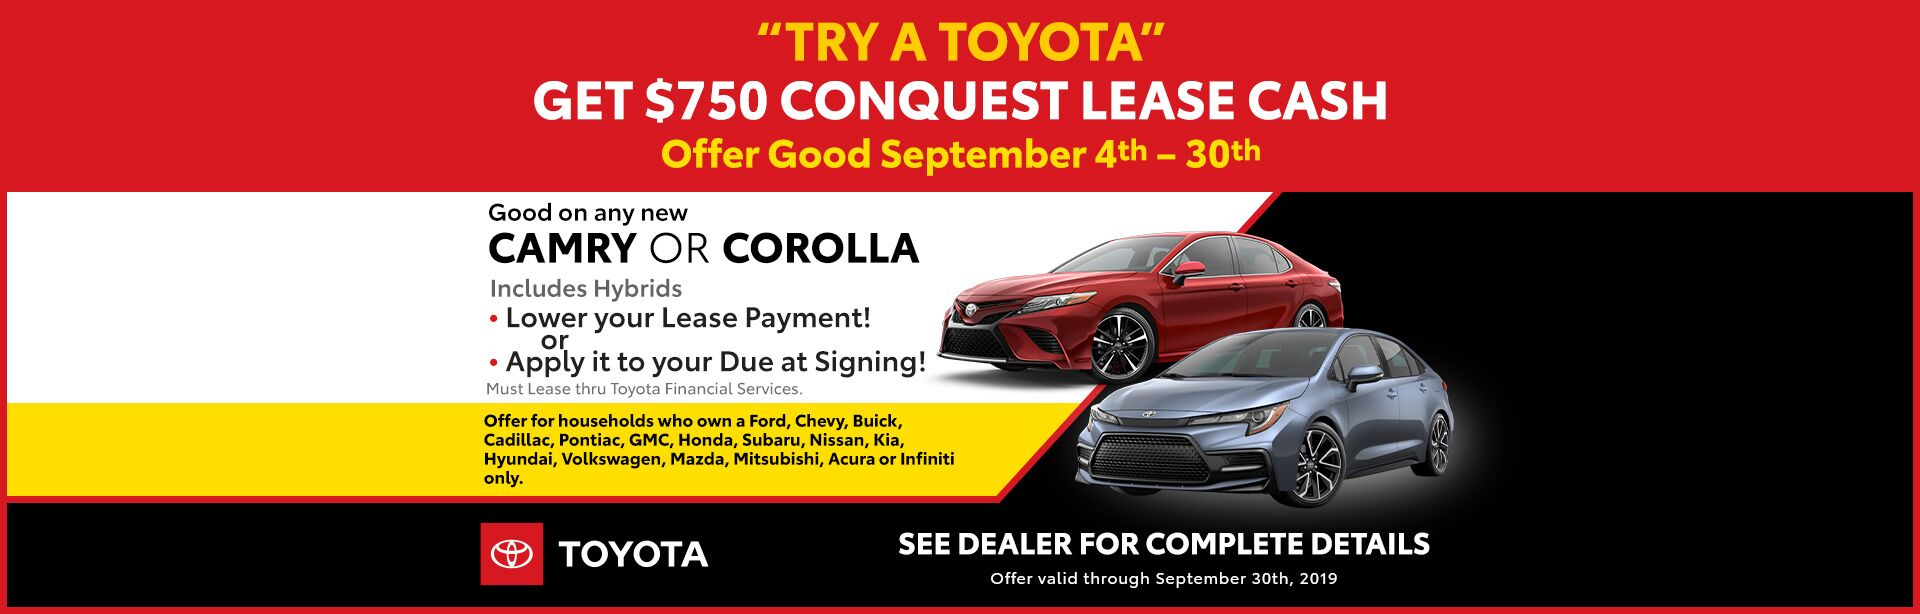 Conquest Lease - Camry and Corolla